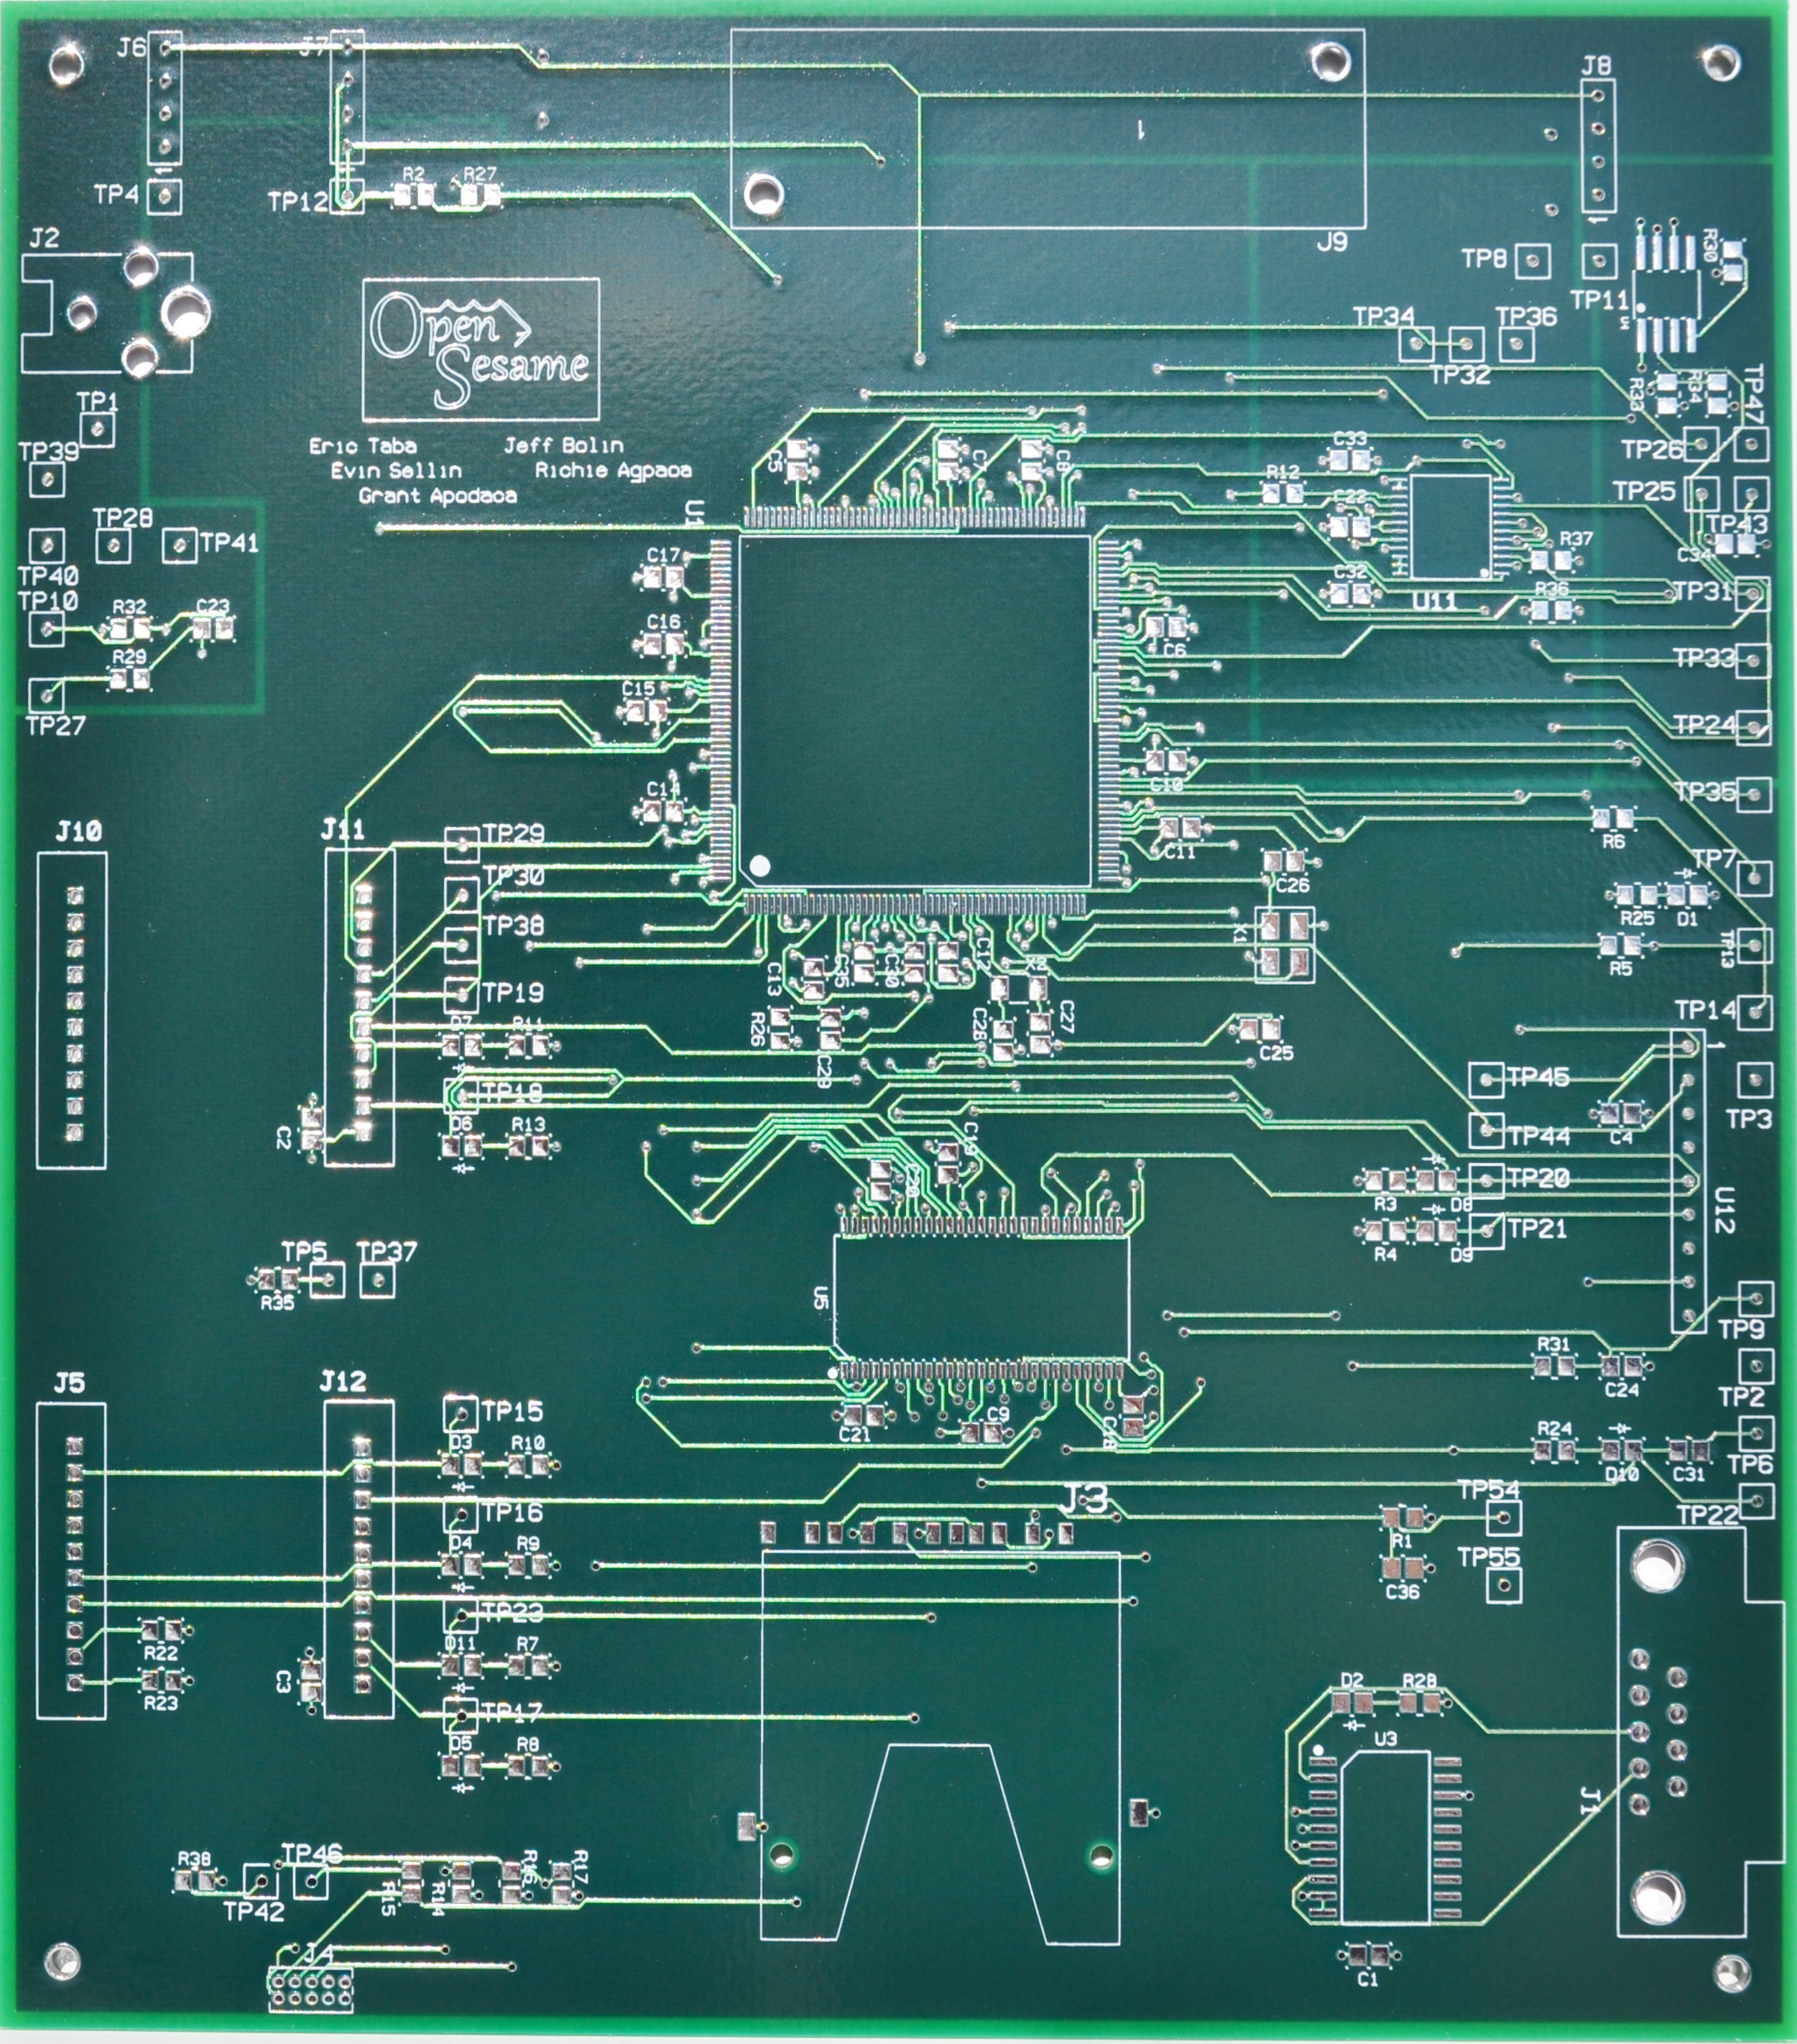 Evas Are Extensive Printedcircuit Board Pcb Networks That Contain Previous Senior Capstone Projects Printed Circuit Development Artwork Bare Assembled